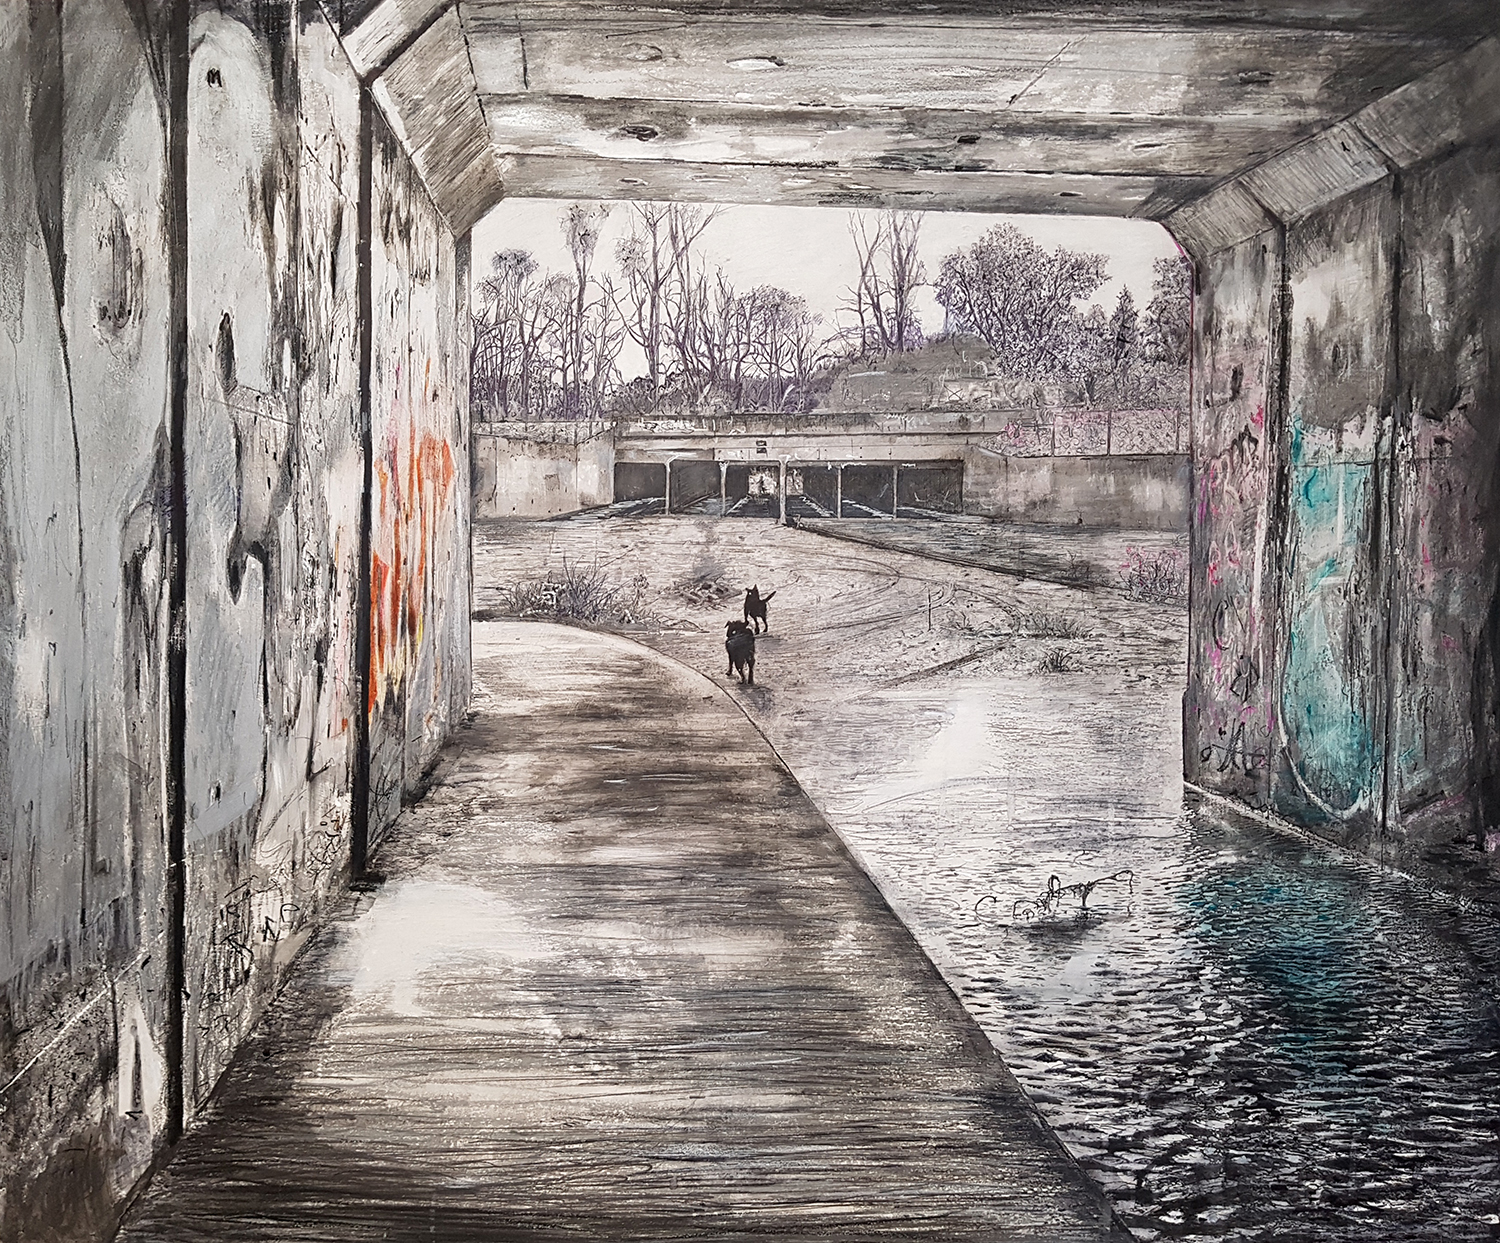 """Someplace Else Unknown, 2018  Pencils, charcoal, highlighter pens, ball-point pens, spray paint on gesso hardboard, 83 x 100 cm  The major prize winners of the  2018 Marie Ellis OAM Prize for Drawing  were announced last night at the opening of the Finalists Exhibition at the Project Gallery, Queensland College of Art.  Major Prize Winner, Dennis McCart """"Someplace Else Unknown."""